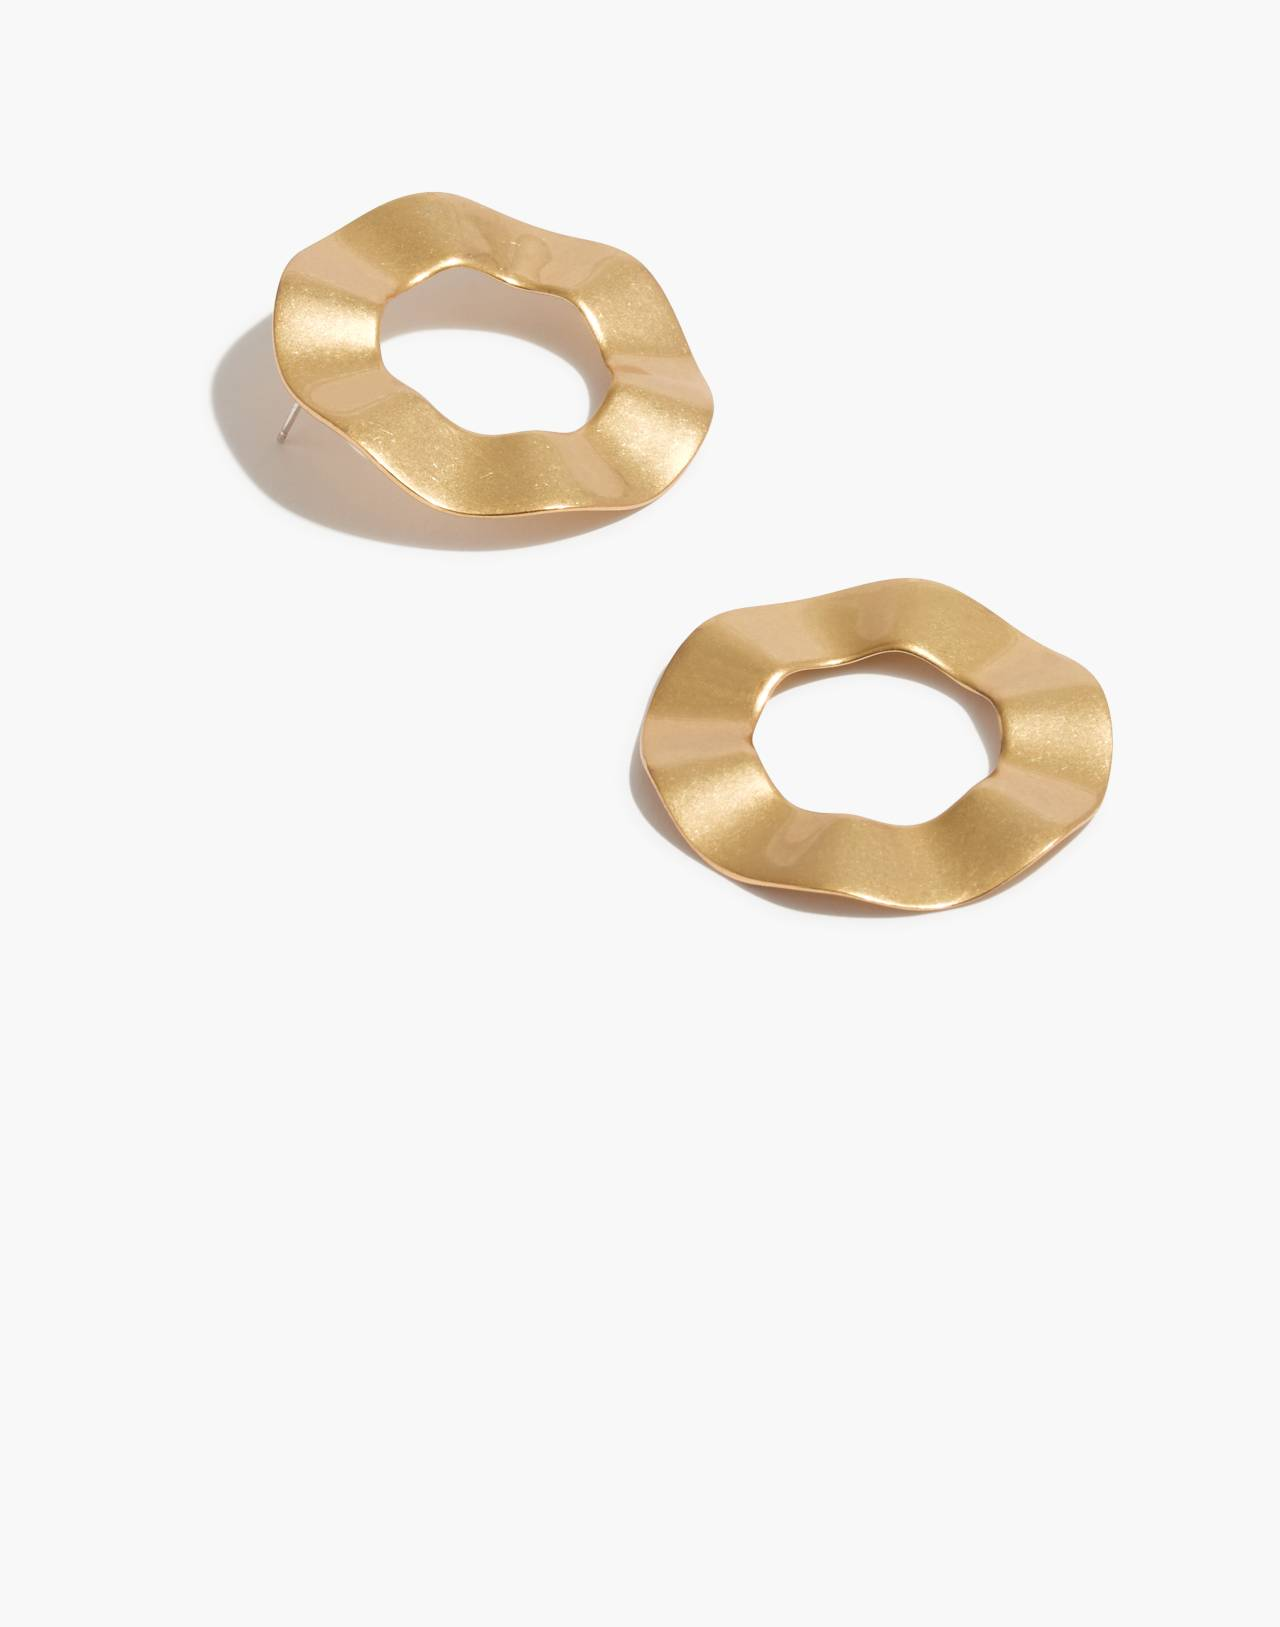 Ripple Ring Earrings in vintage gold image 1